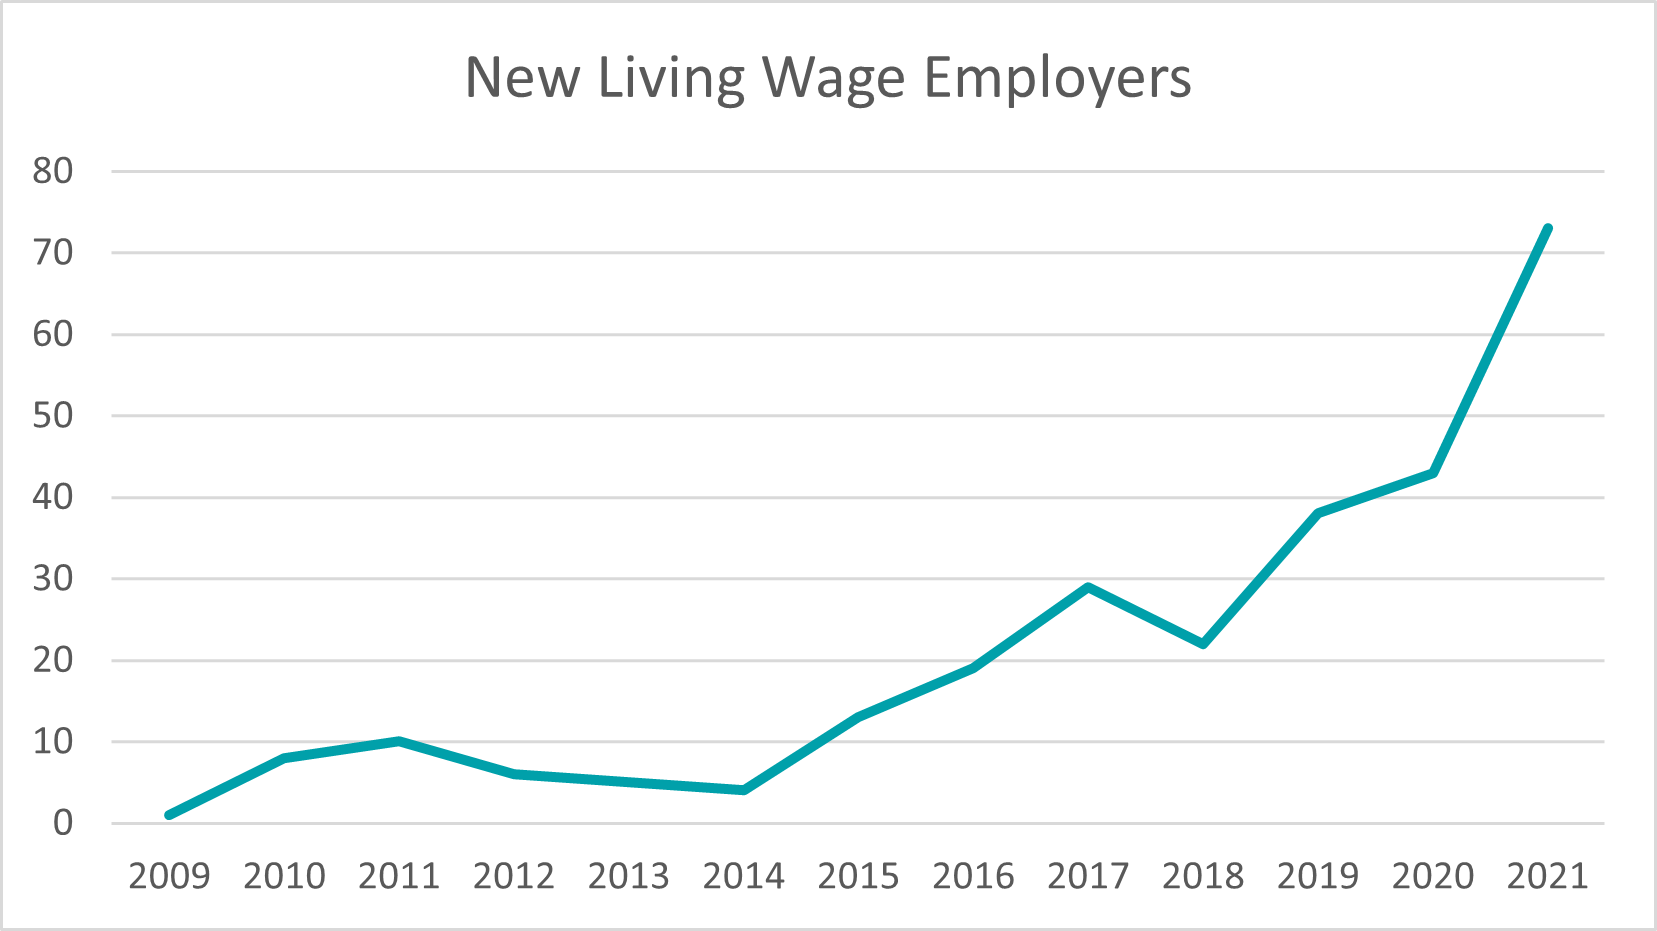 Growth in Living Wage Employers